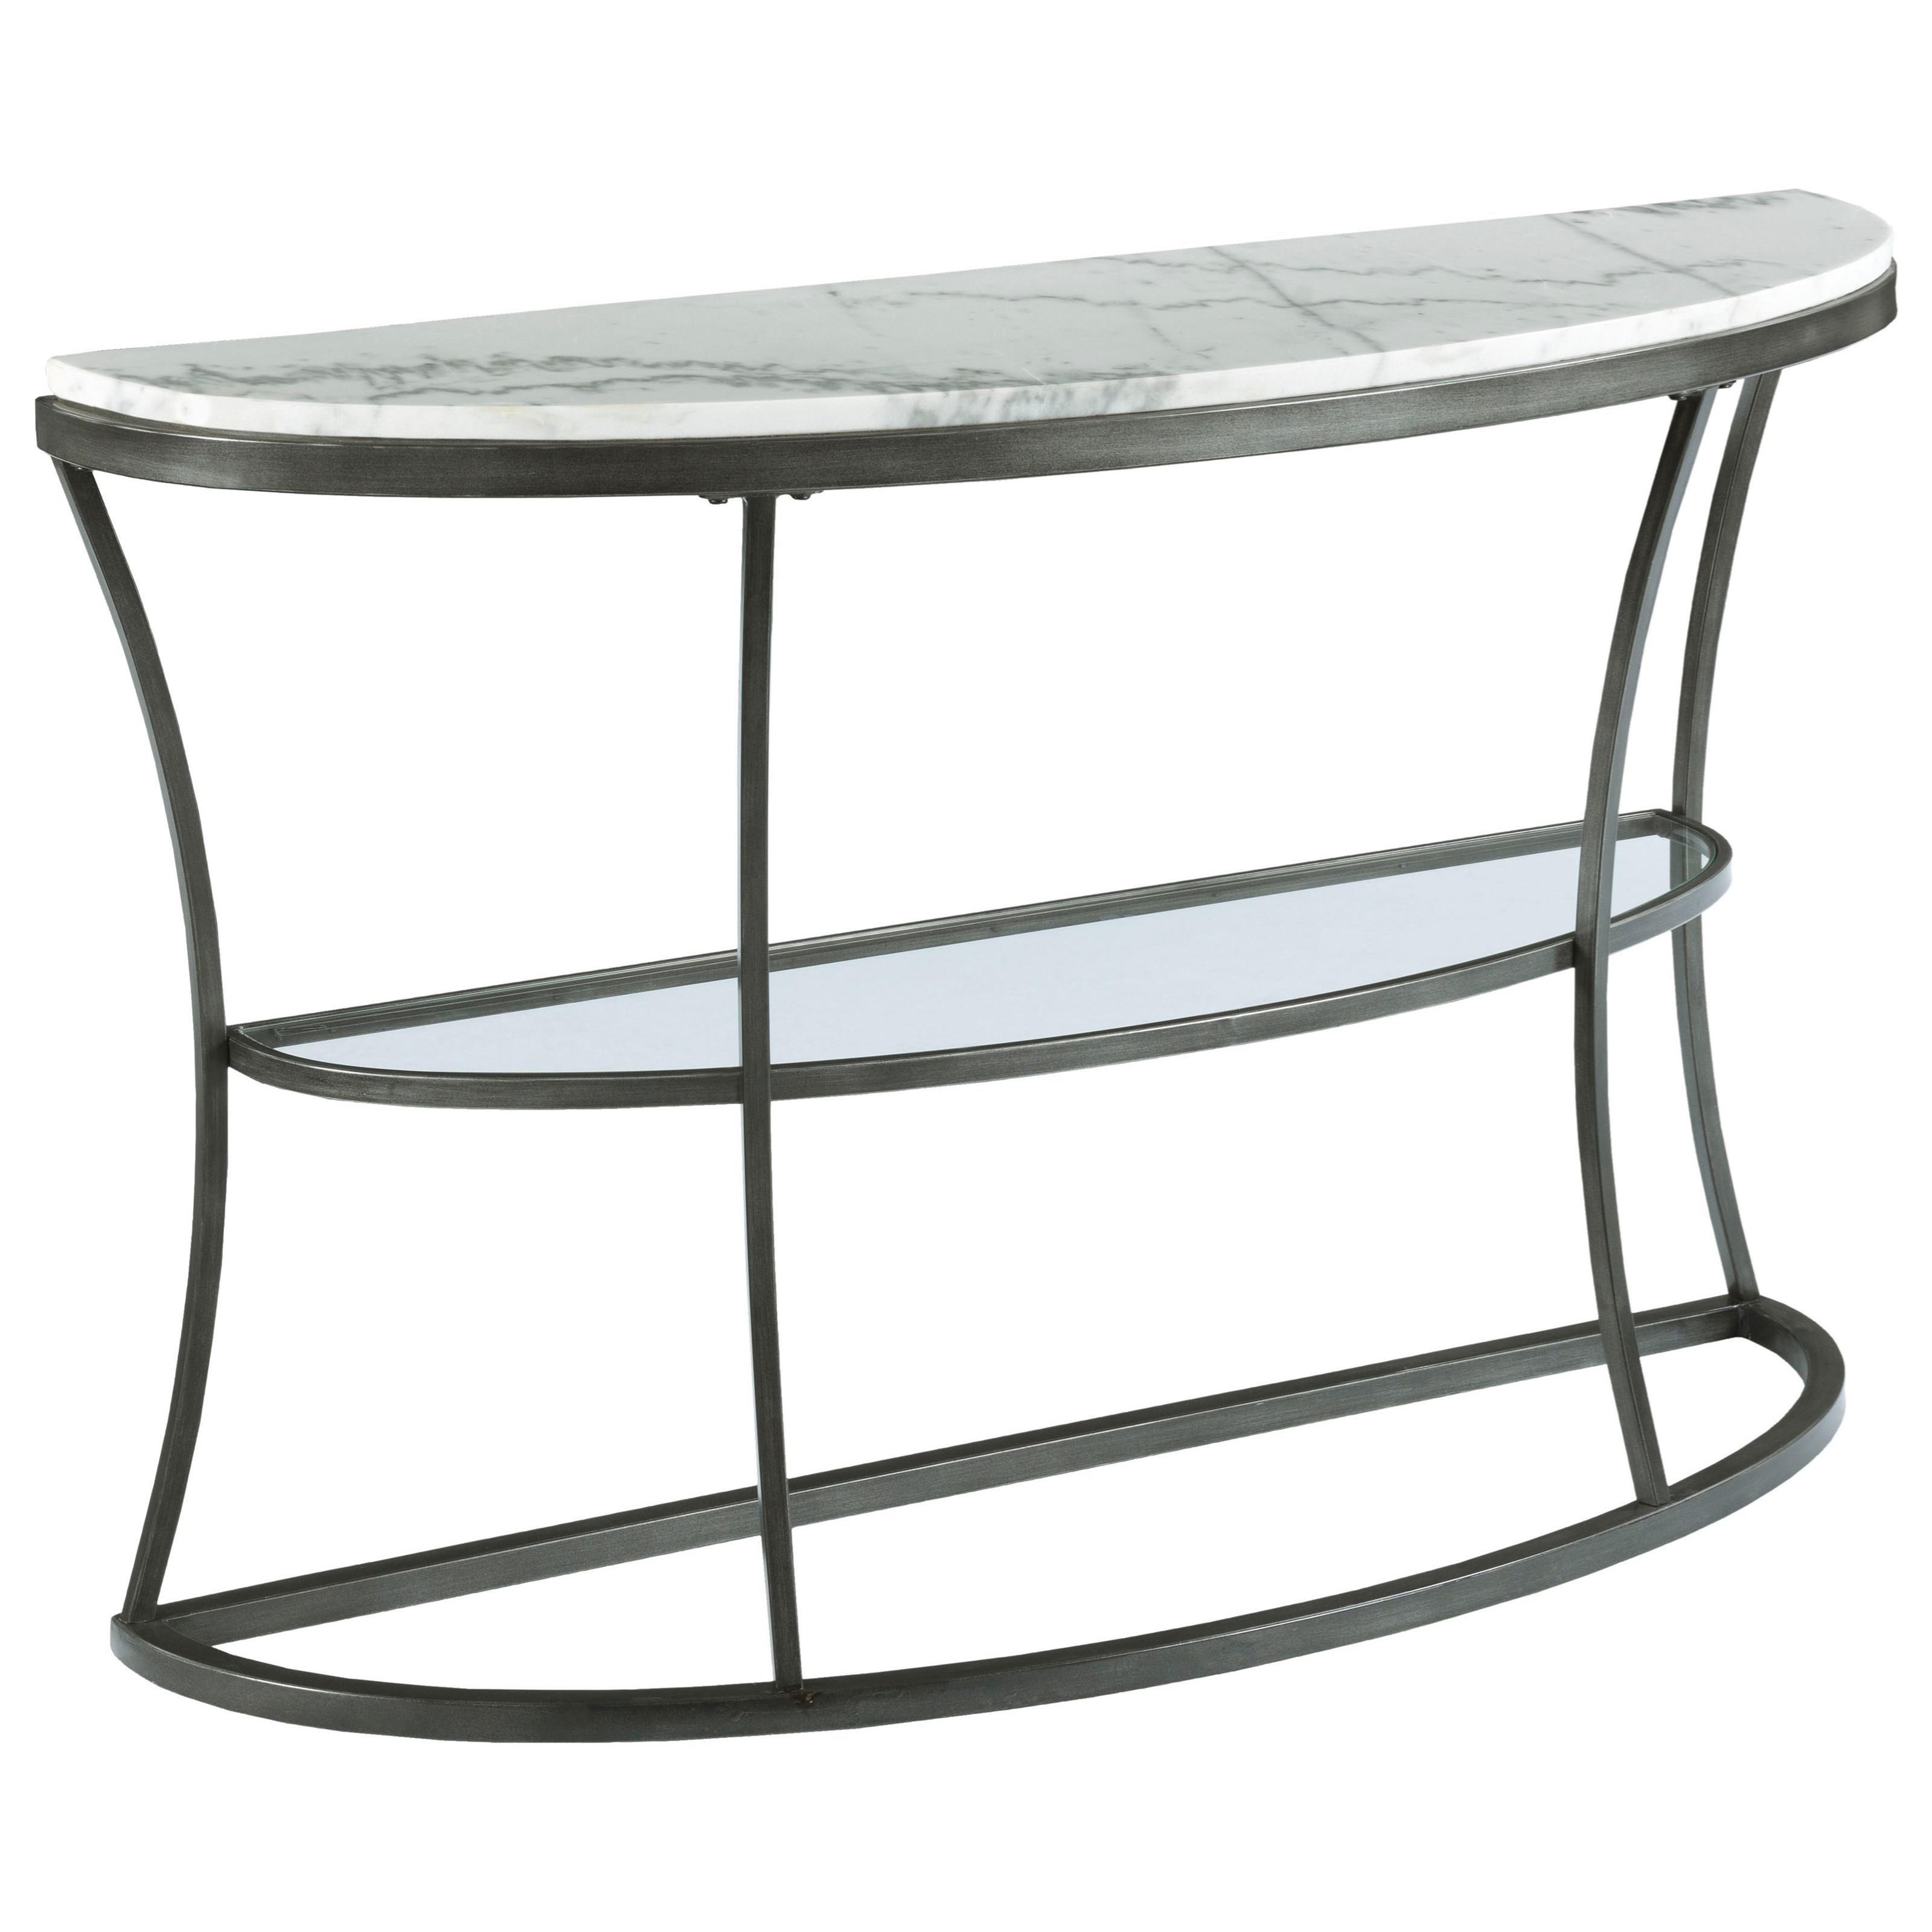 Demilune console table with marble top and glass shelf by hammary demilune console table with marble top and glass shelf geotapseo Gallery